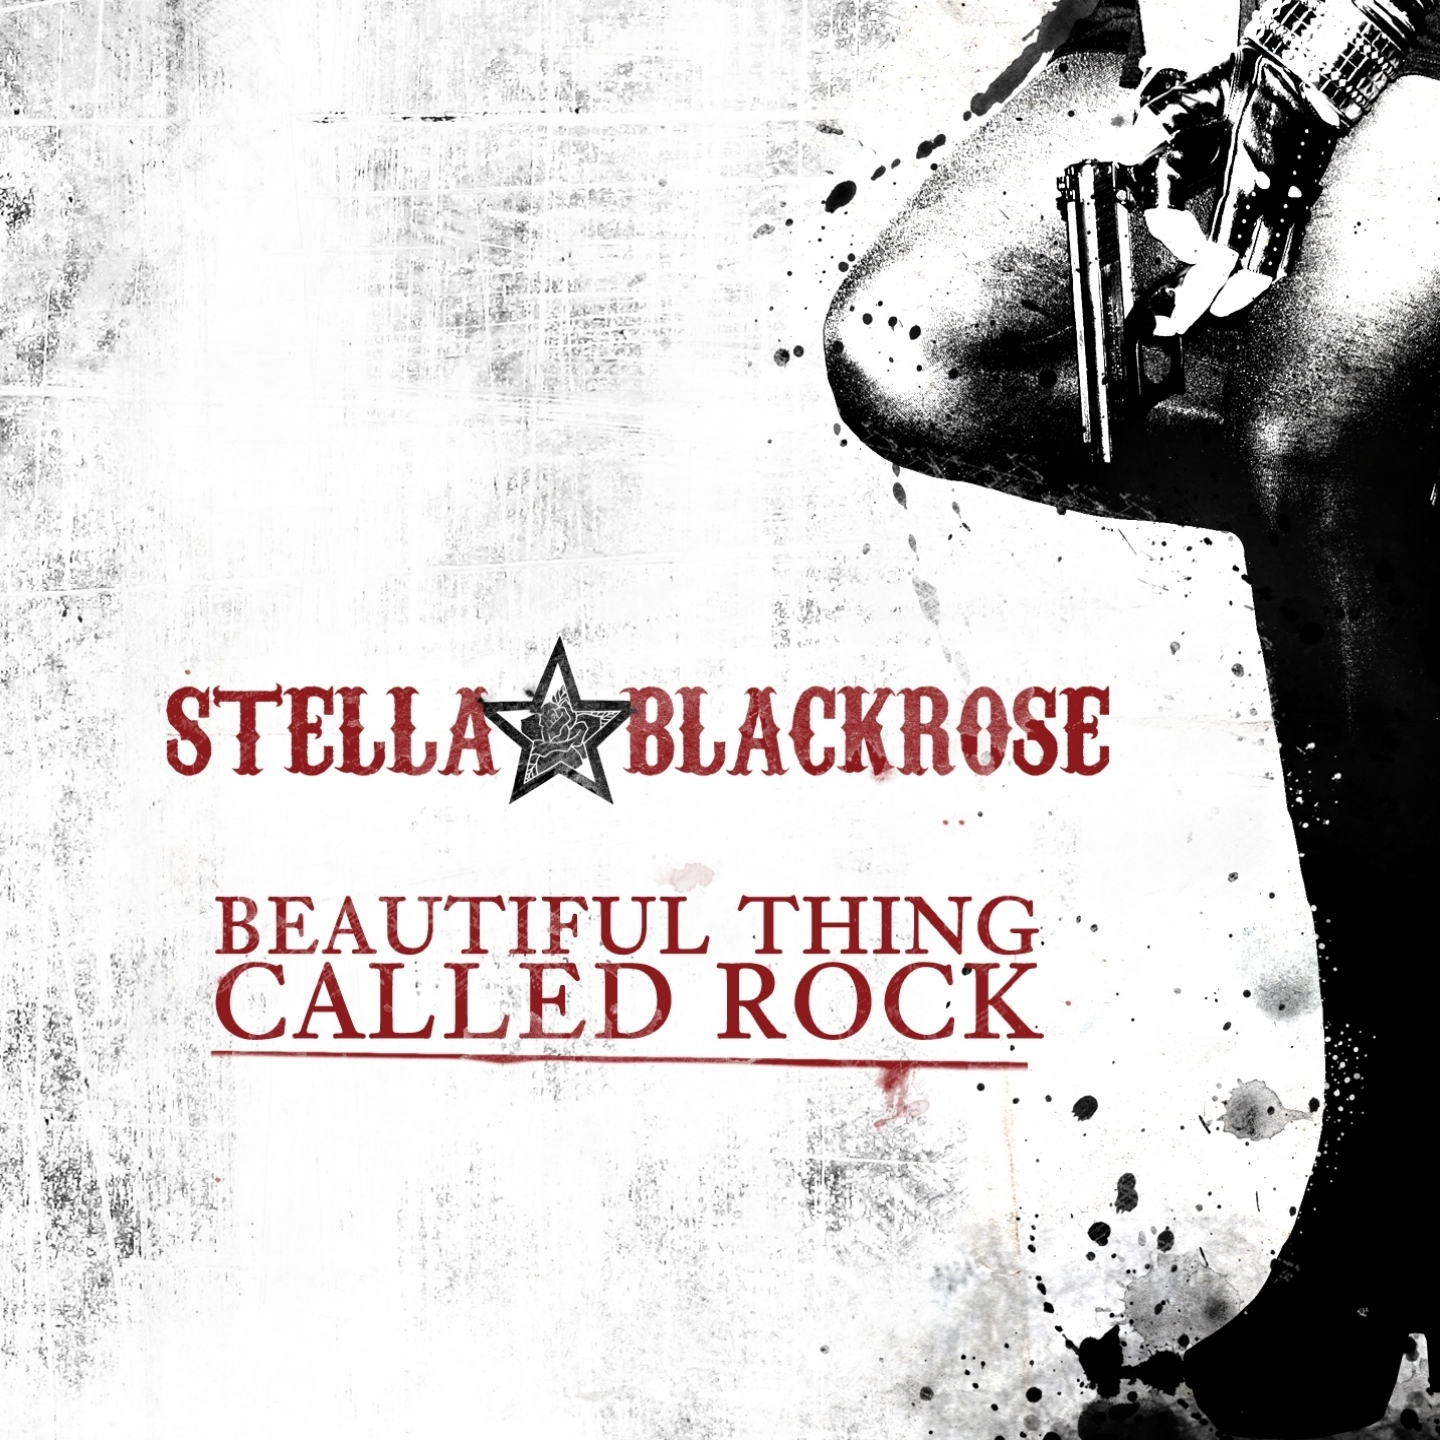 Stella Blackrose – 'Beautiful Thing Called Rock' (Single)